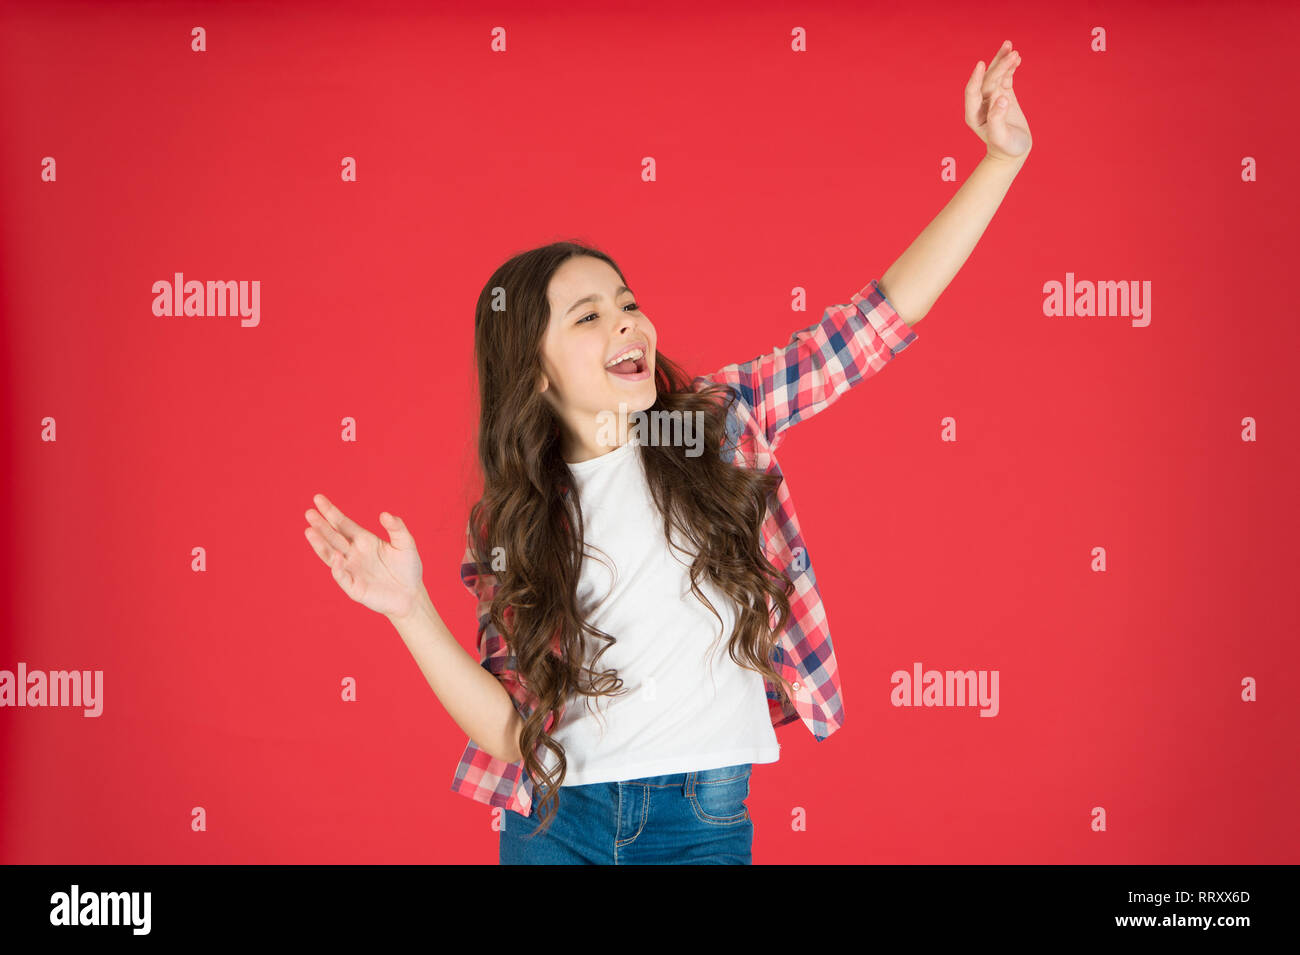 Happy little girl on red background little girl dancing little cutie smiling girl express positivity here i am